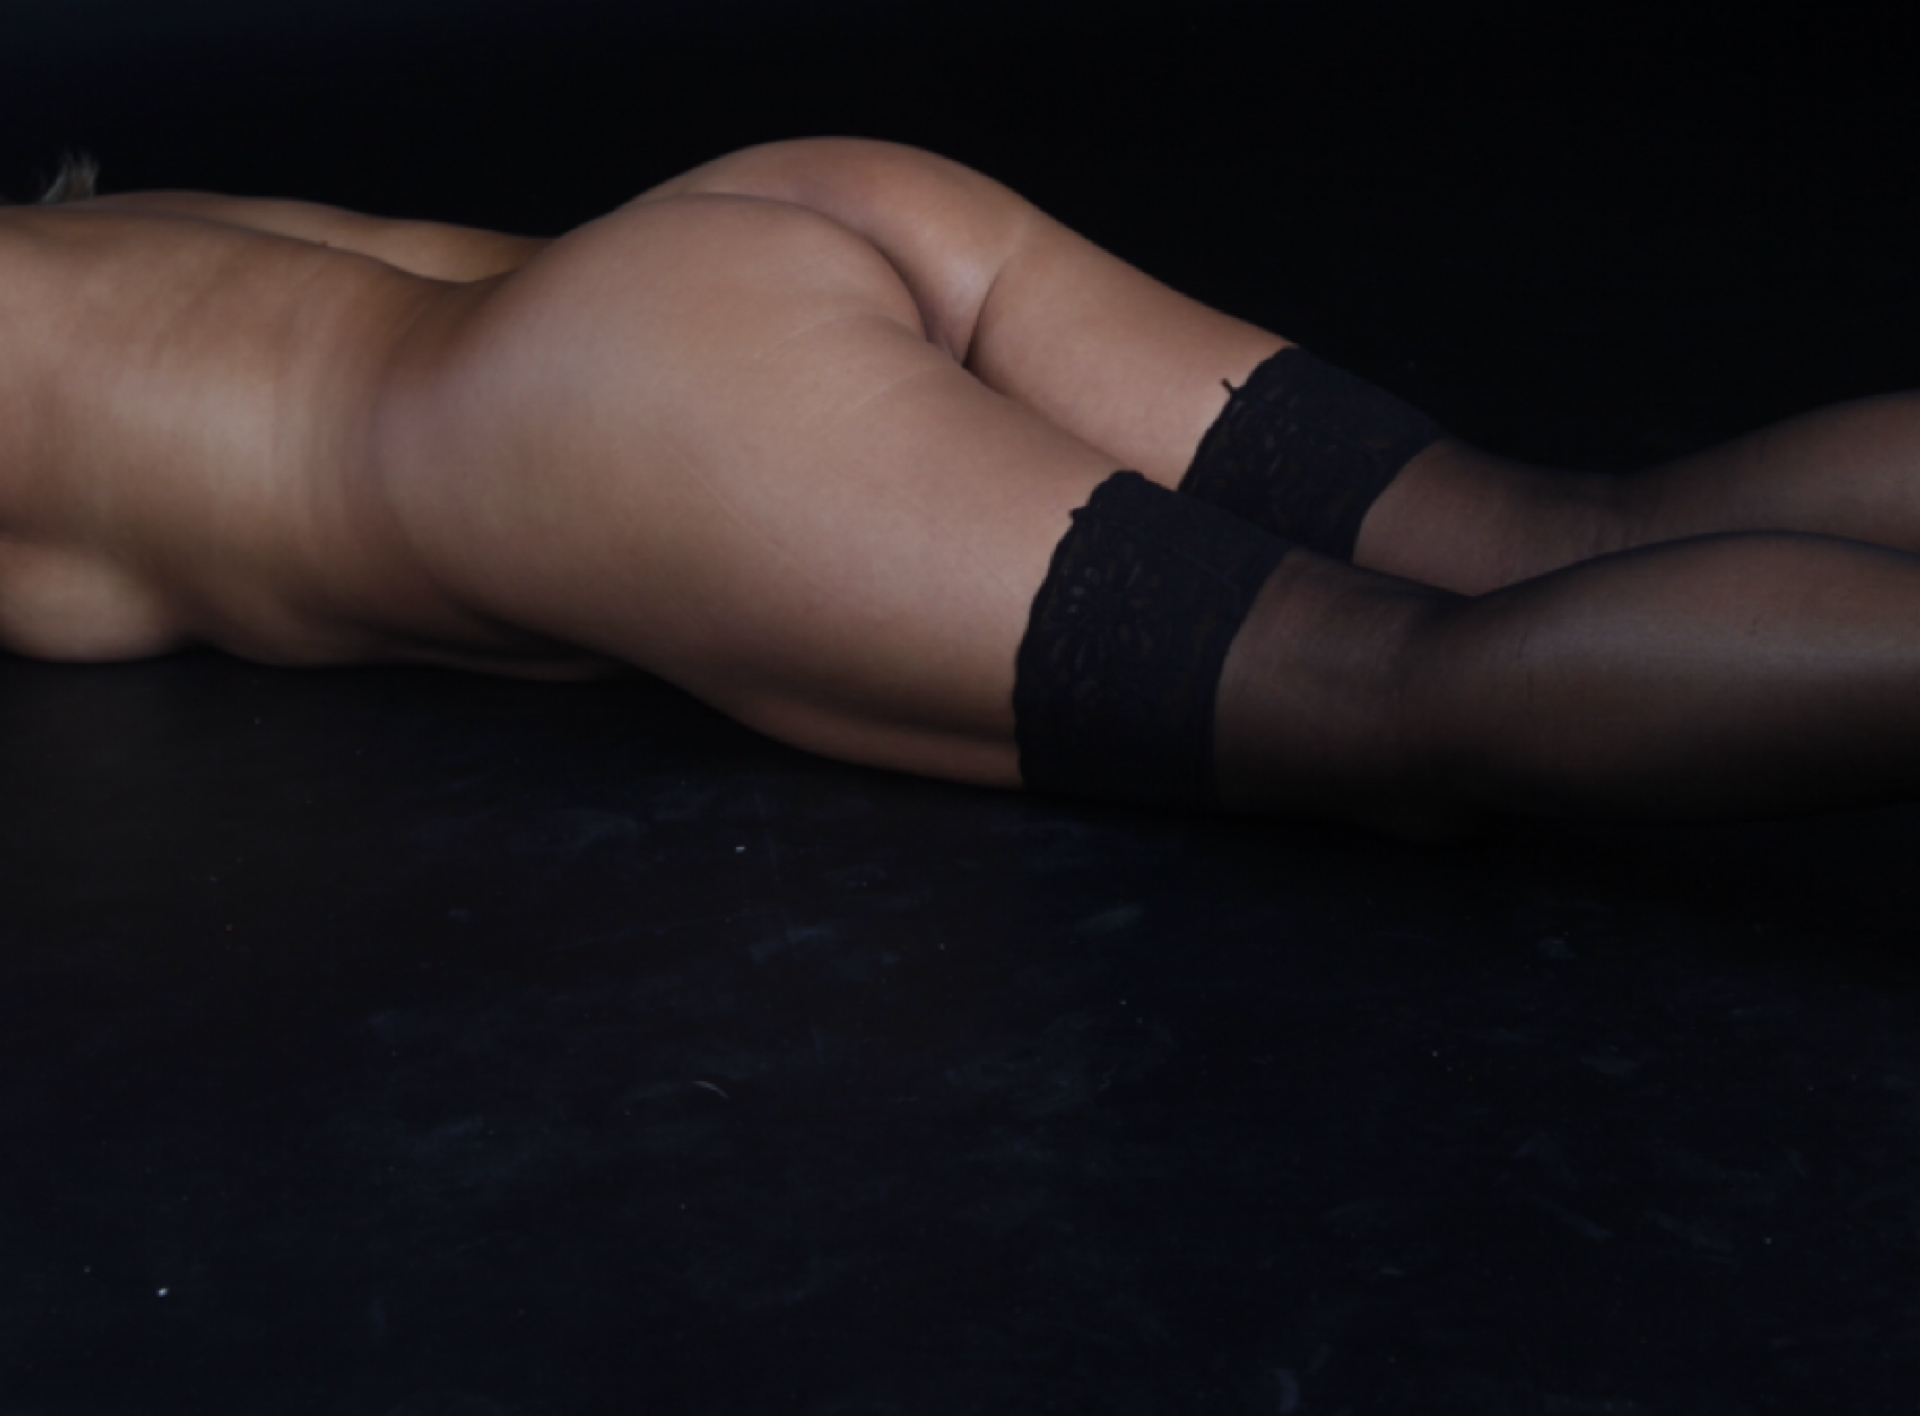 homoseksuel sex massage jylland sex i vestjylland